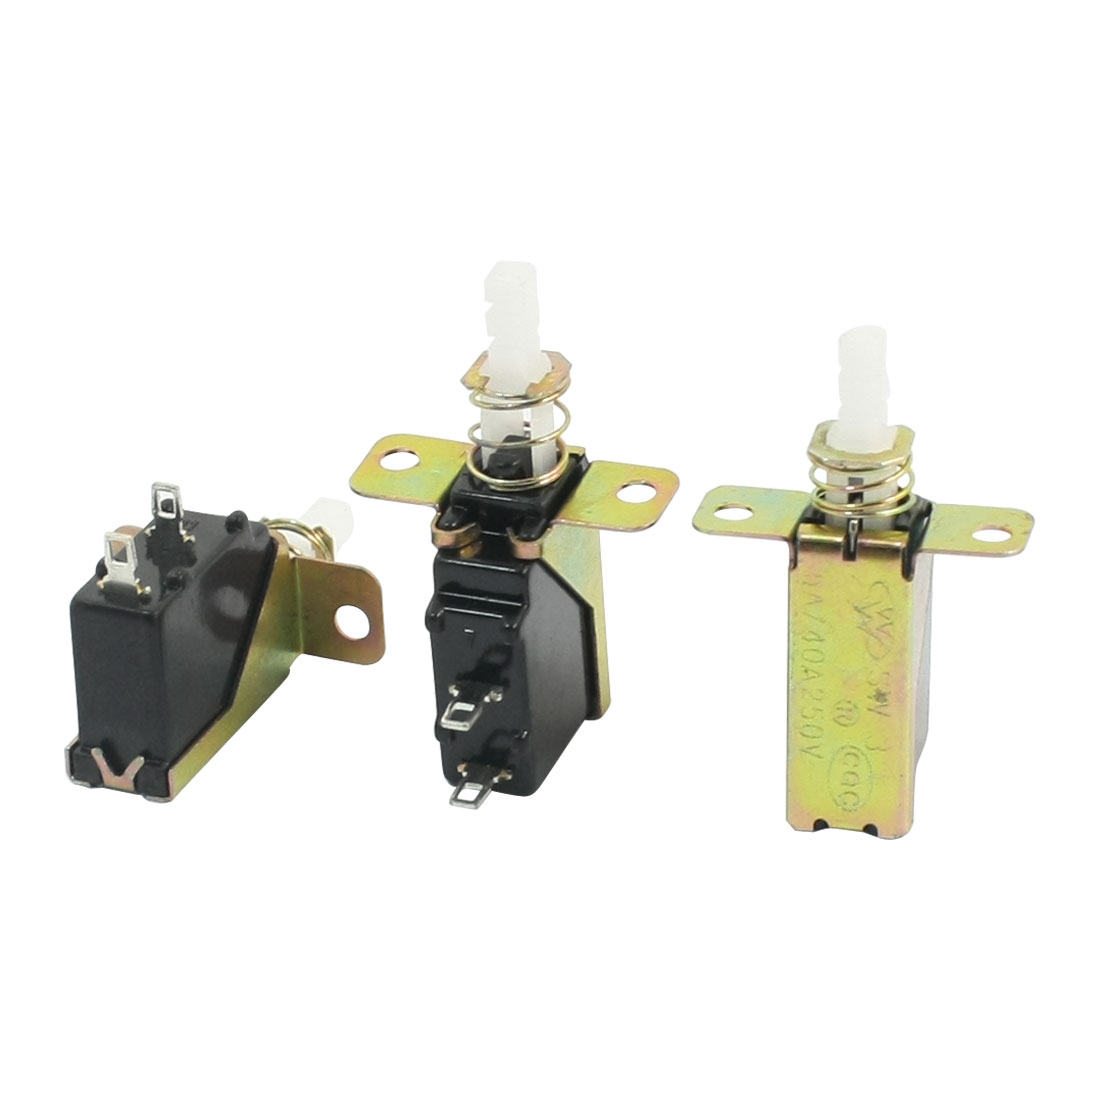 3 Pcs 2 Pin SPST Spring Loaded Locking Push Button Switch 5A/40A AC 250V